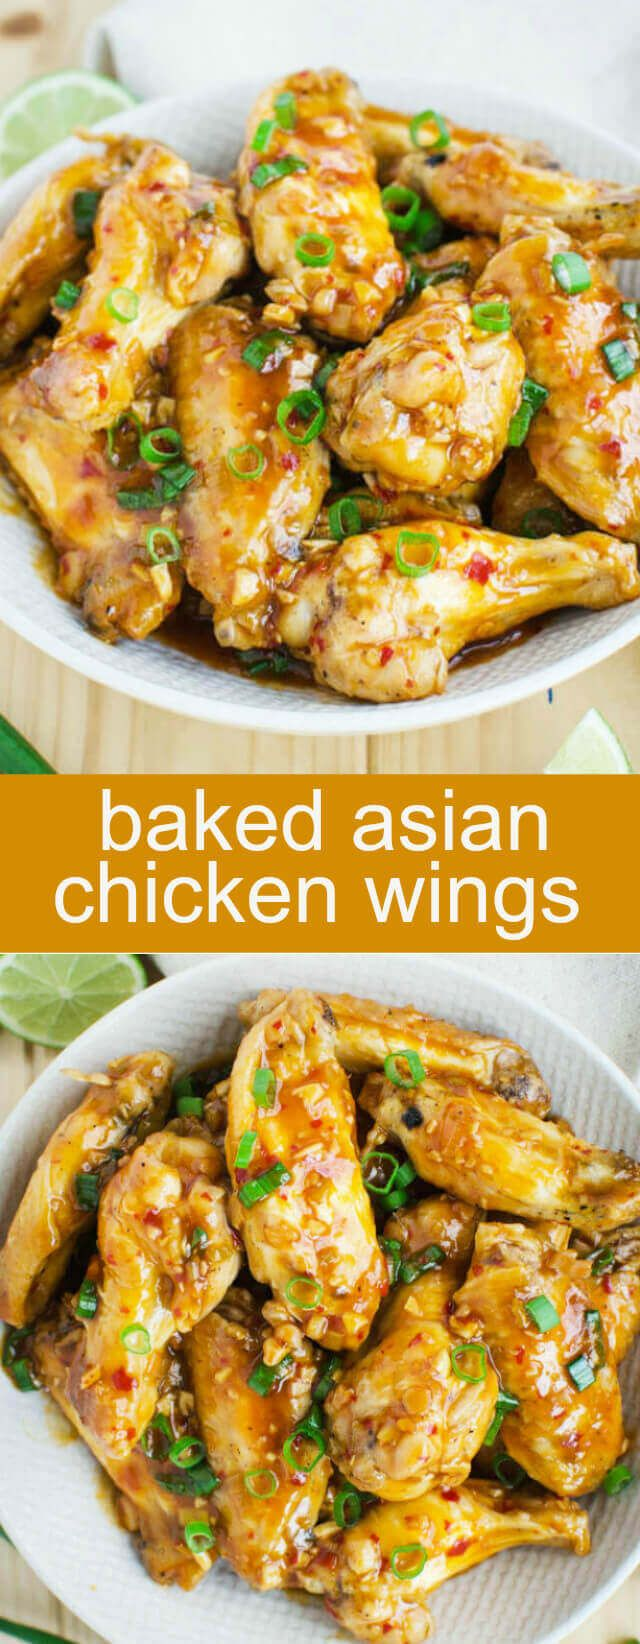 Baked Asian Chicken Wings {A Fun Tangy Appetizer} baked/ chicken/ wings Baked Asian Chicken Wings Recipe - Amazing chicken wings that are baked in an oven and coated with sweet savory and tangy Asian sauce. via @tastesoflizzyt